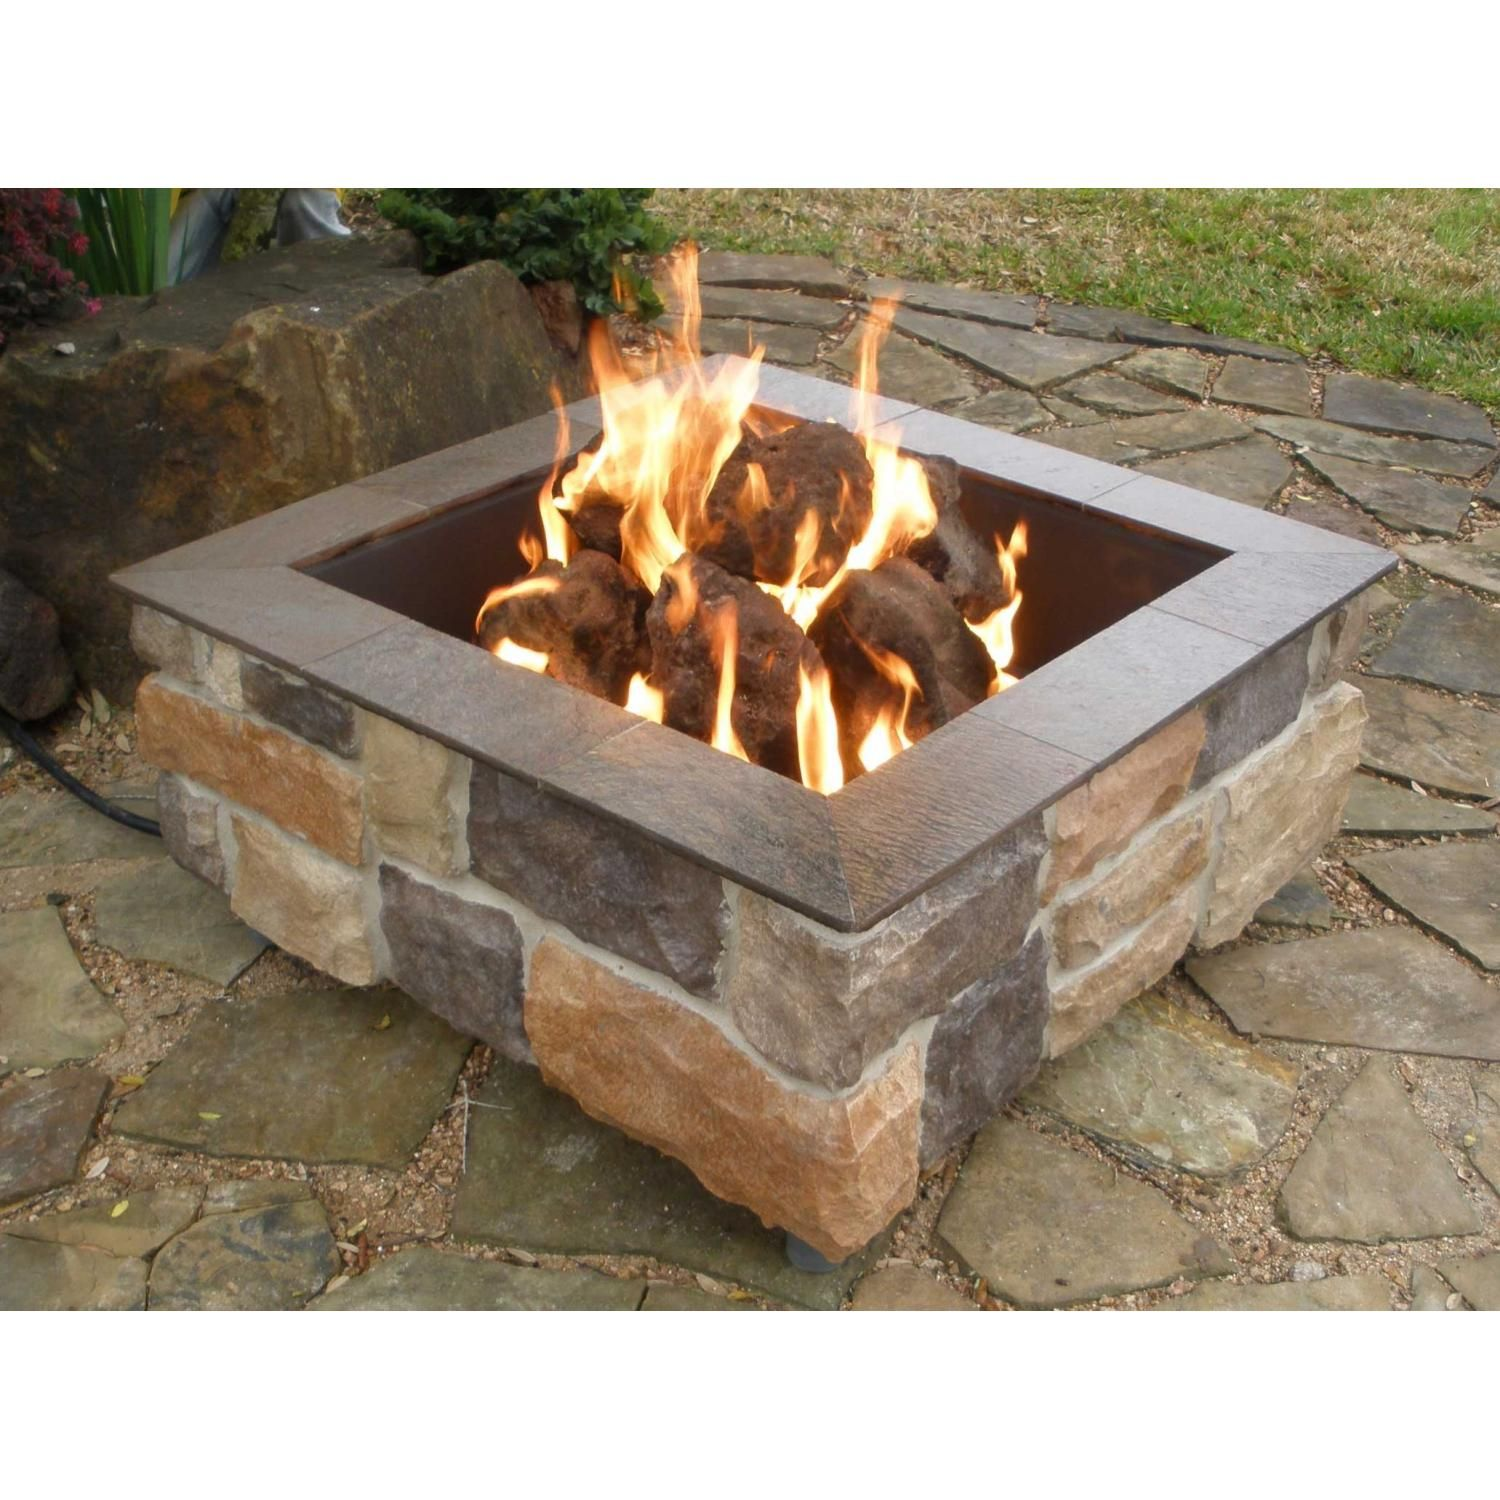 The best images about fire pit on pinterest fire pits video